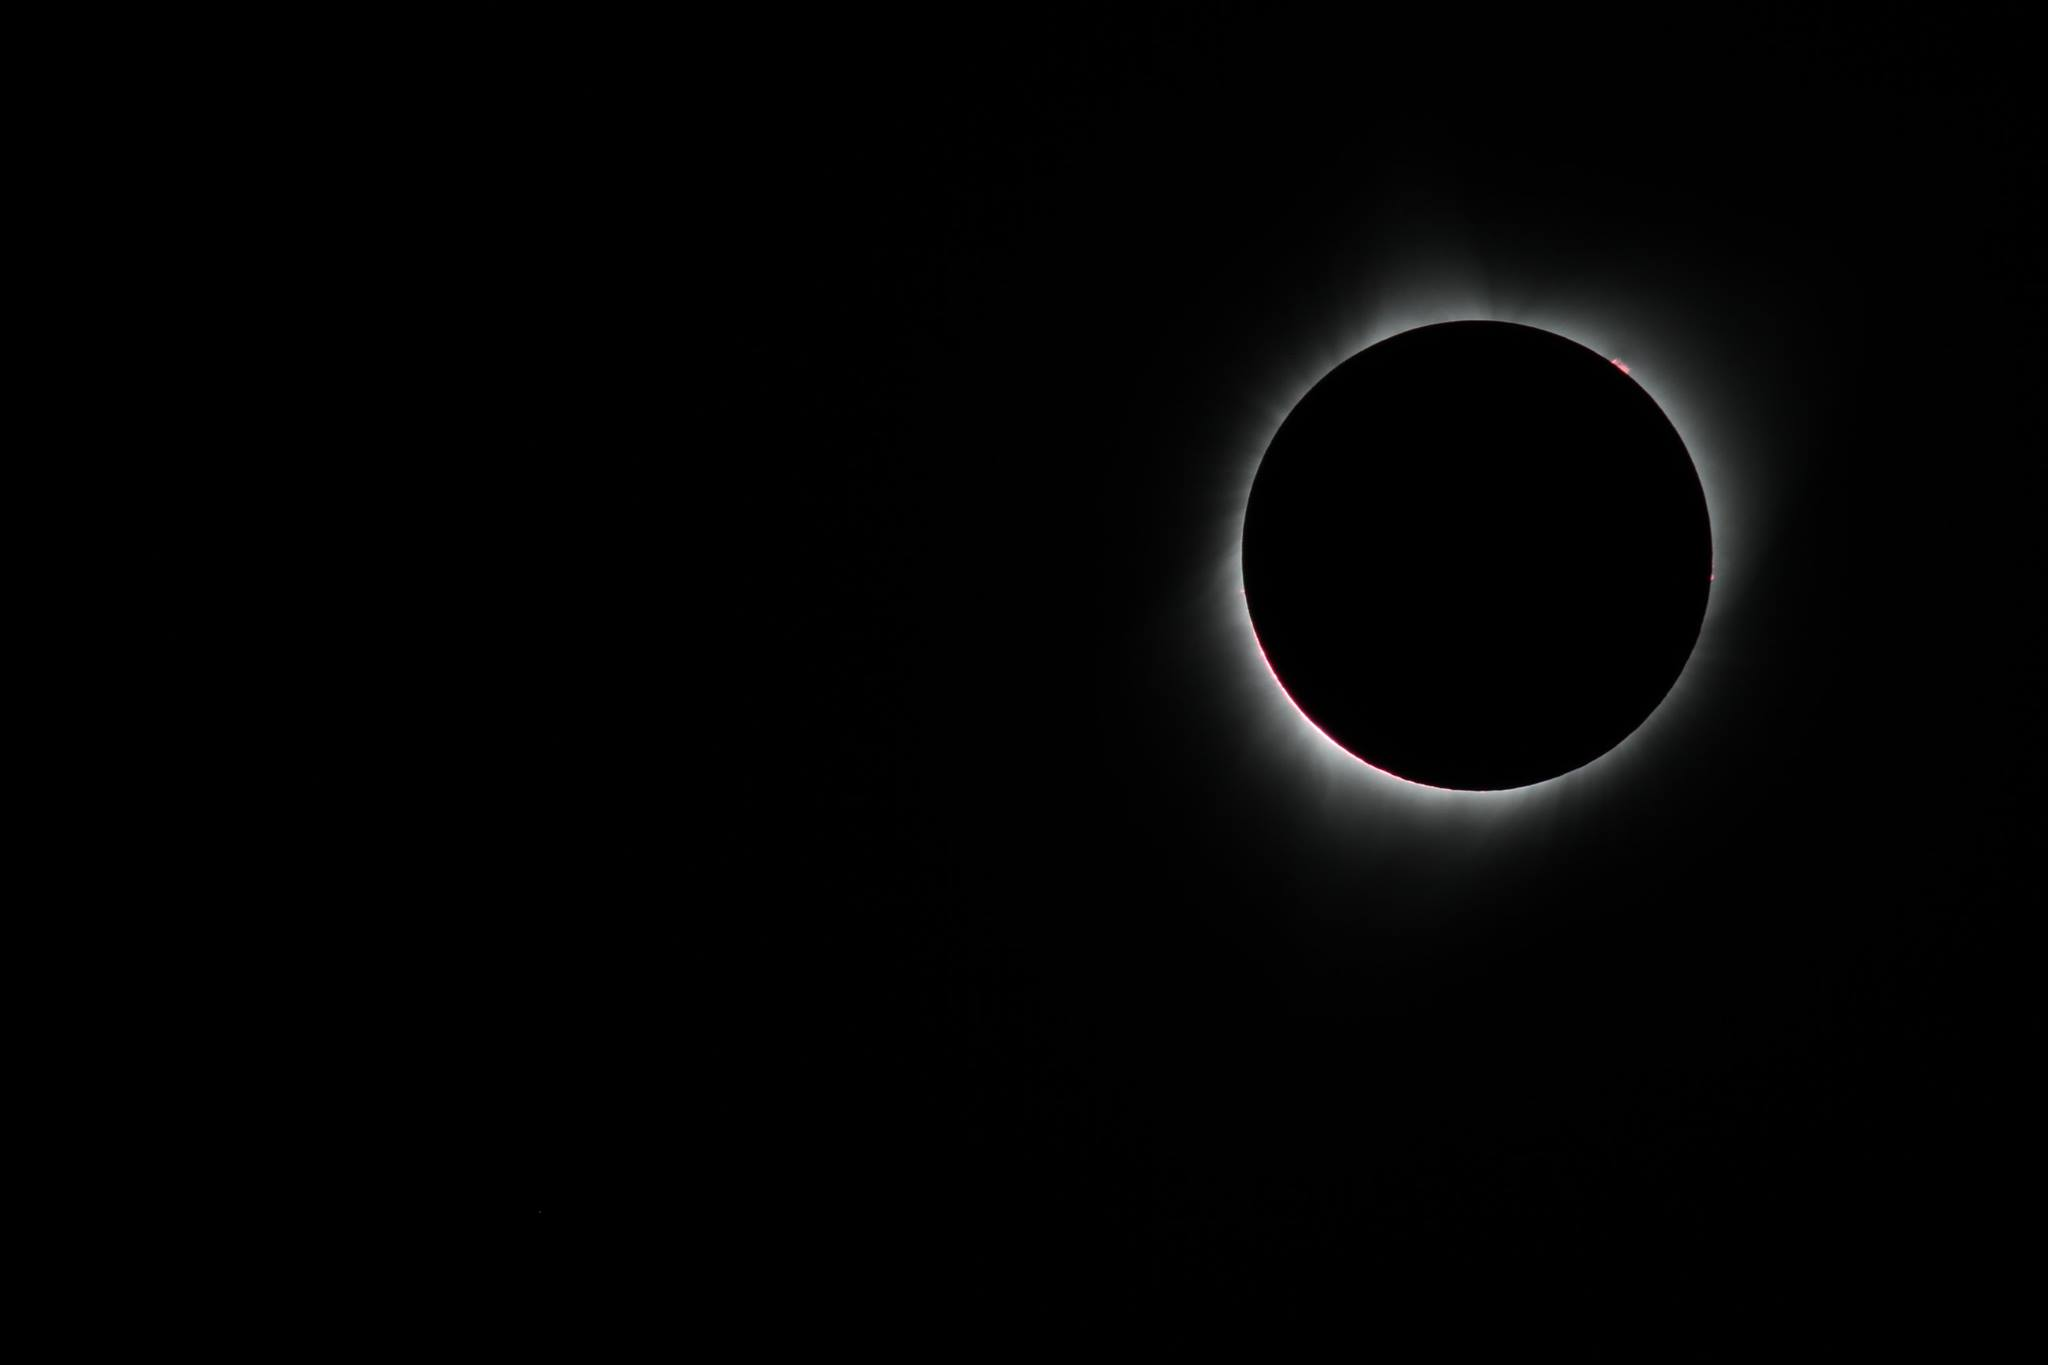 a solar eclipse where the moon has completely blotted out the sun to black except for a faint white glow at the edge and a small reddish-pink burst at the top right